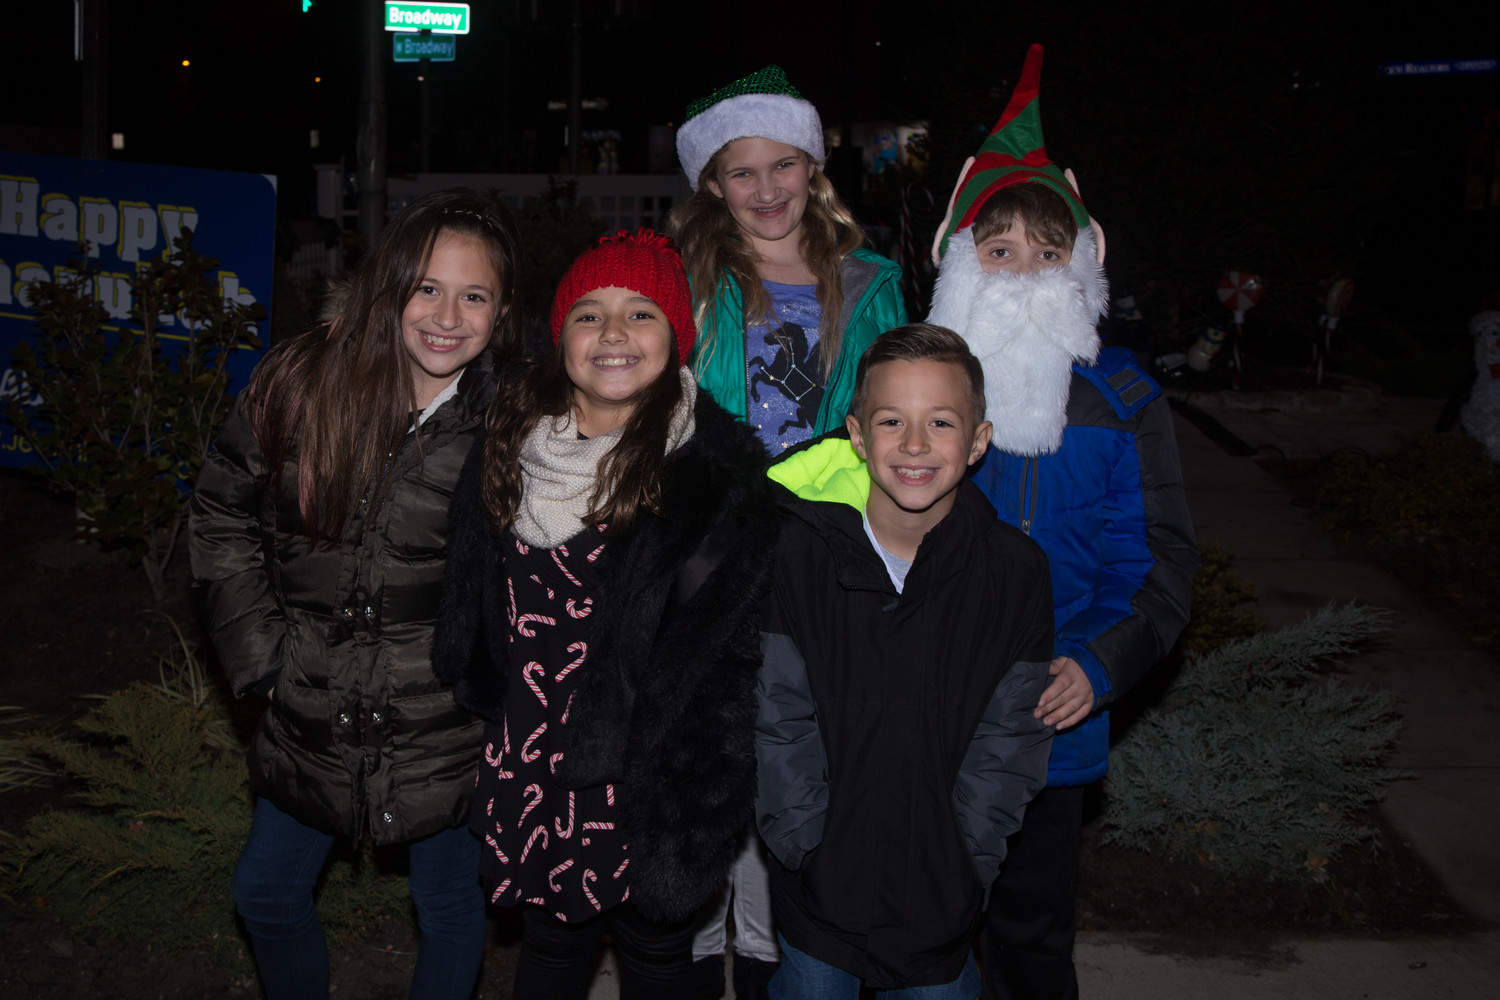 The Christmas spirit and smiles abounded at the community tree lighting last Sunday. From left in front were Lia Piscano and Madison Navarijo, both 9, and James Piscano, 7. In back were Stella Fratti, 11, and Bobby Fratti, 9.